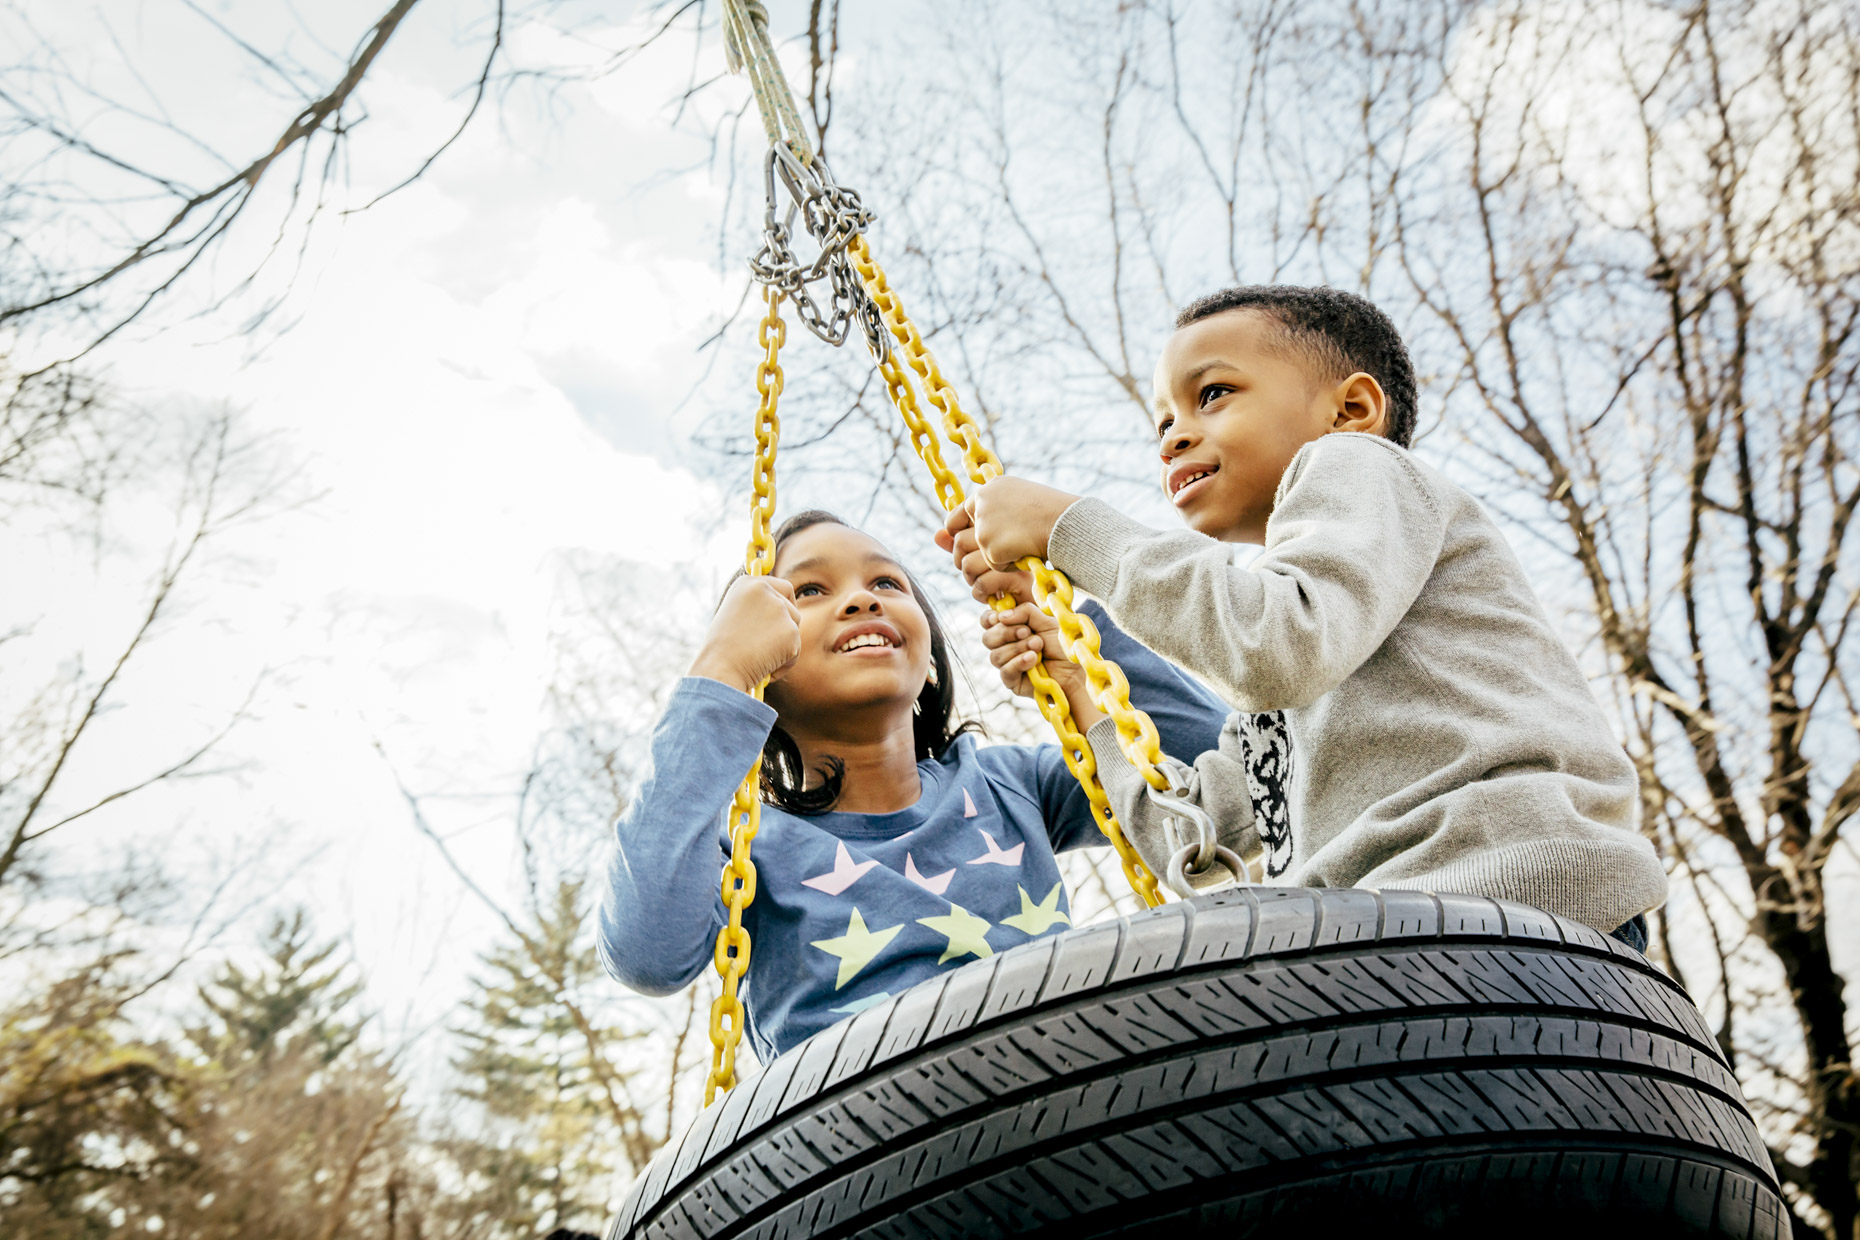 Black boy and girl swinging on tire swing in fall